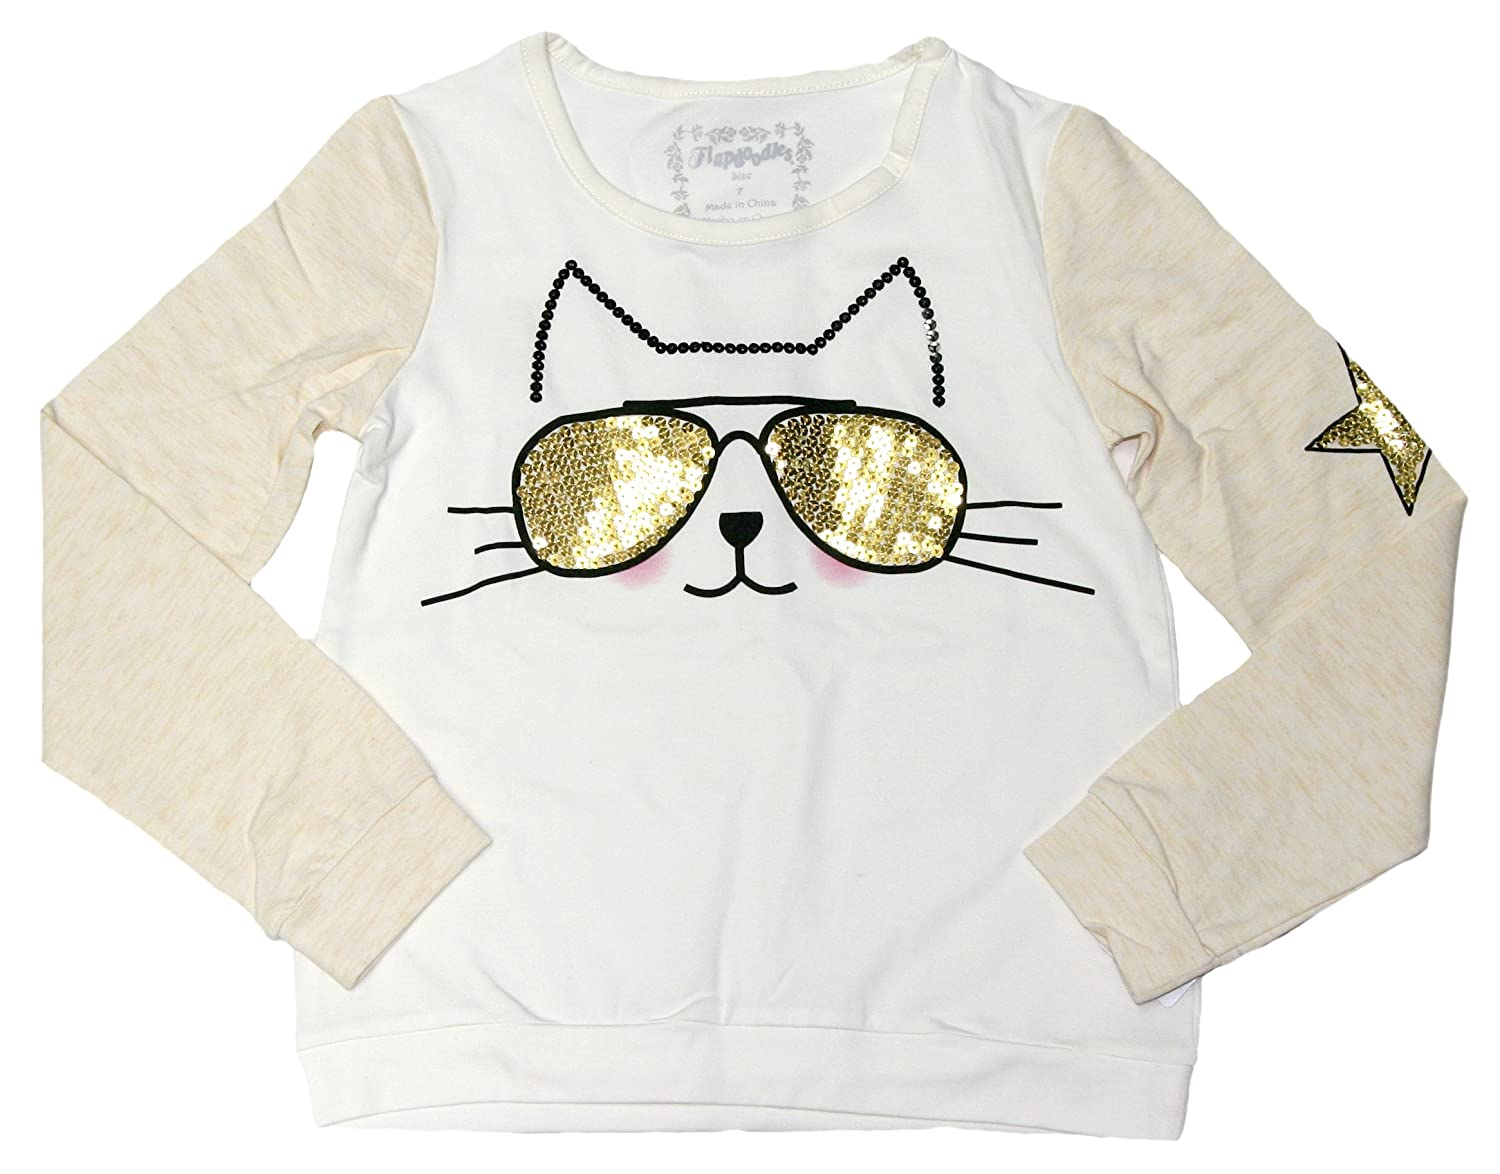 Flapdoodles Big Girls Long Sleeve Shirt with Fashionable Sequined Cat